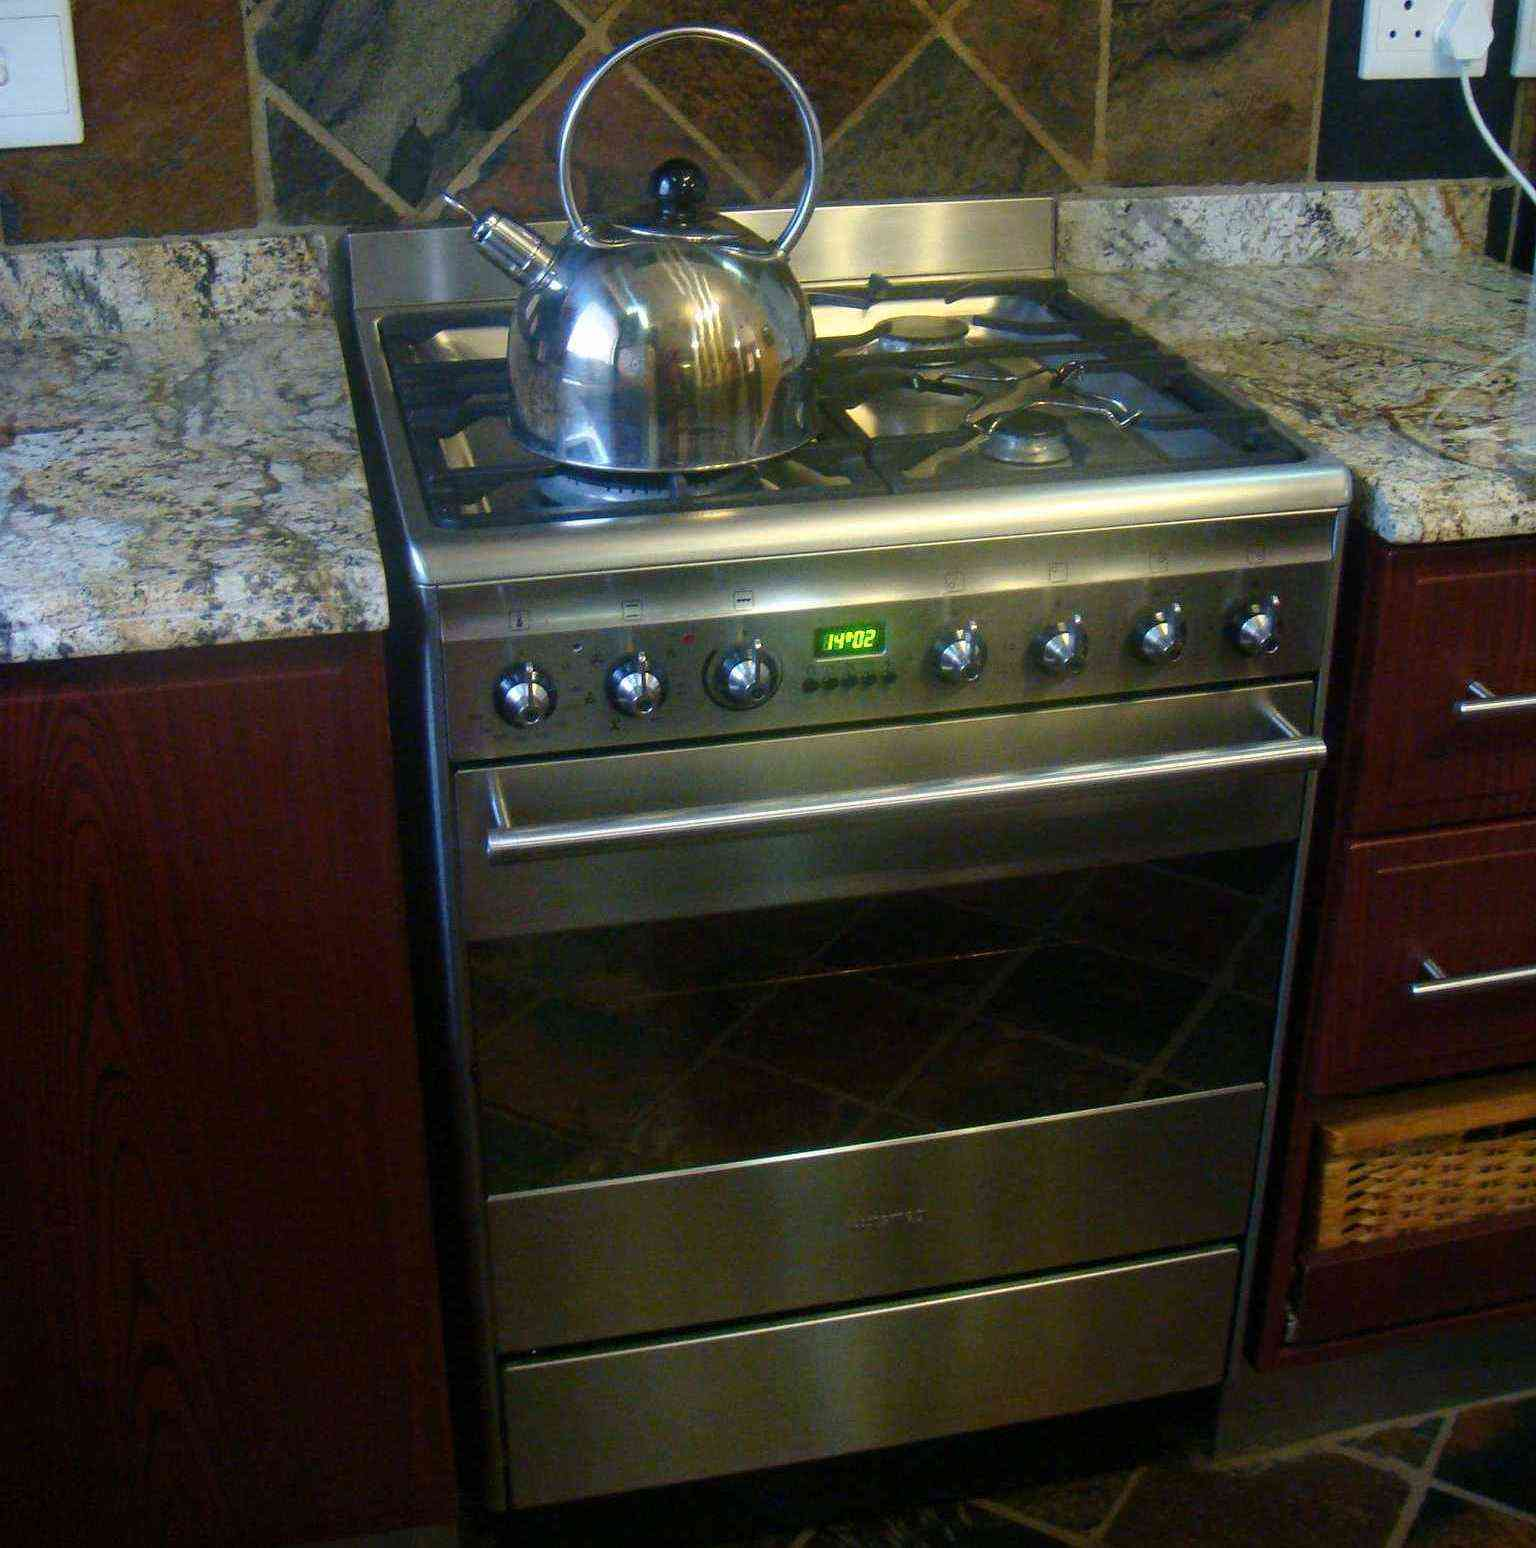 freestanding gas oven